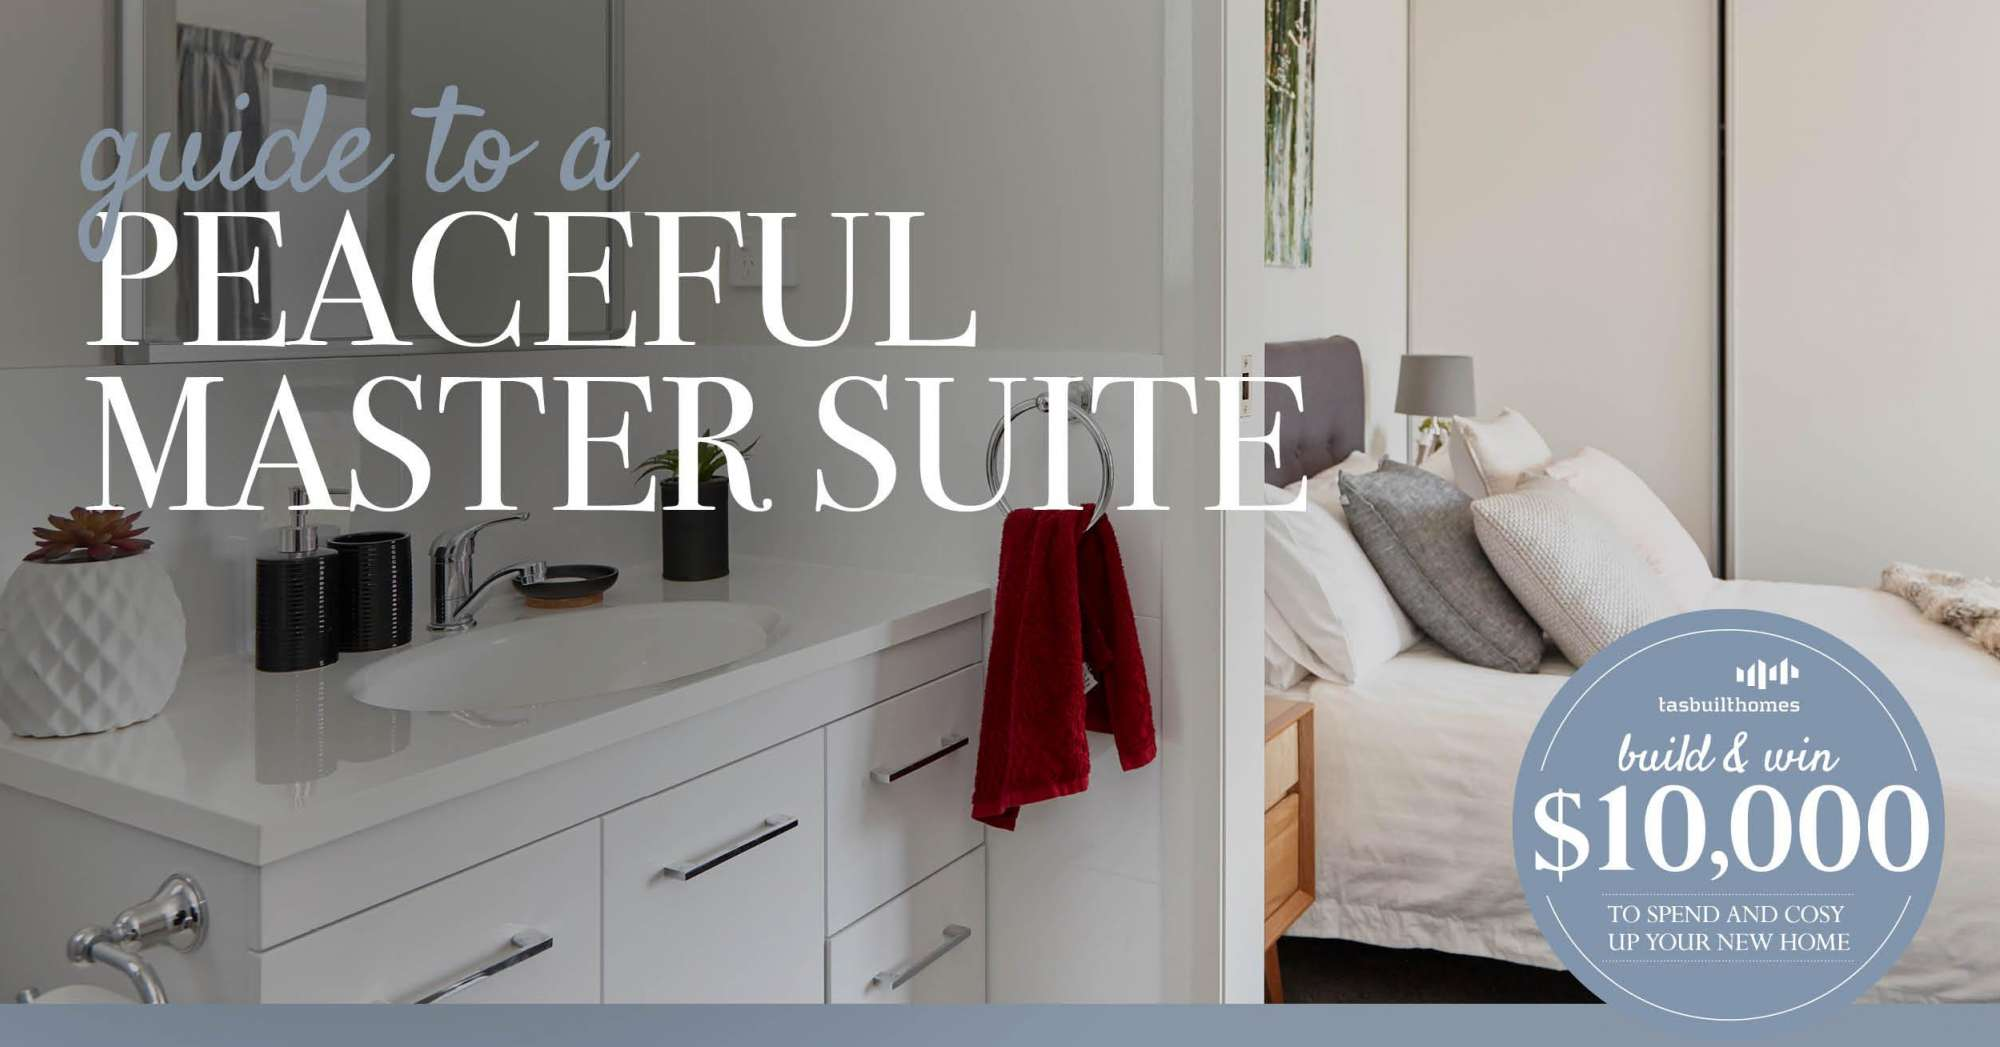 Guide-to-peaceful-master-suite